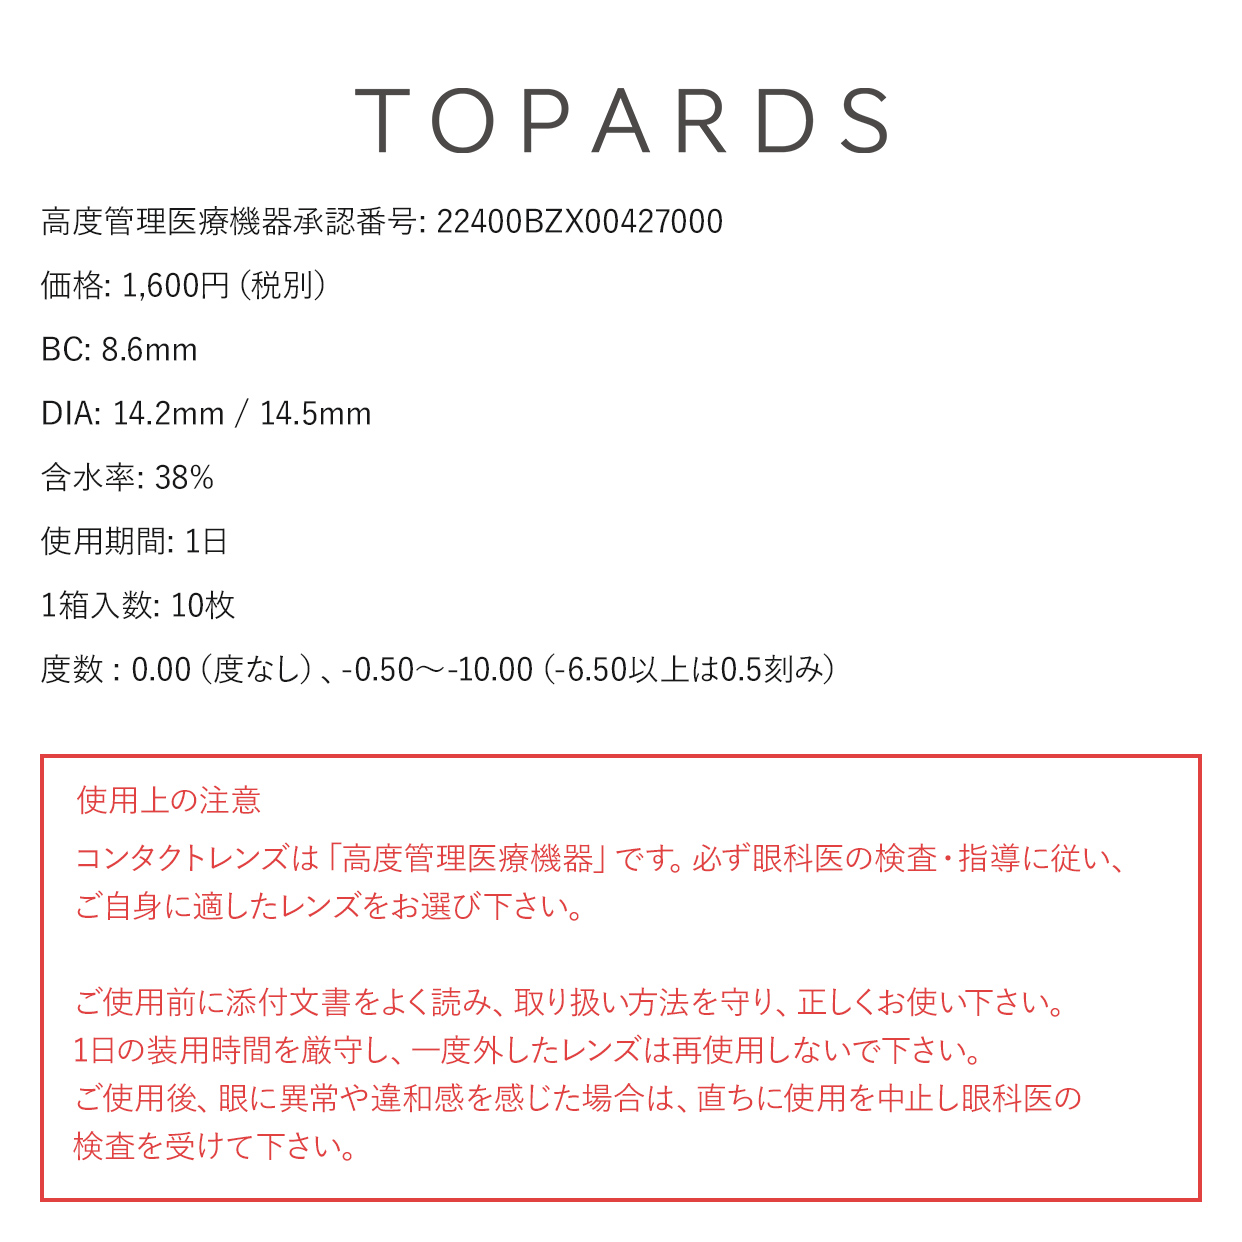 TOPARDS トパーズ 18